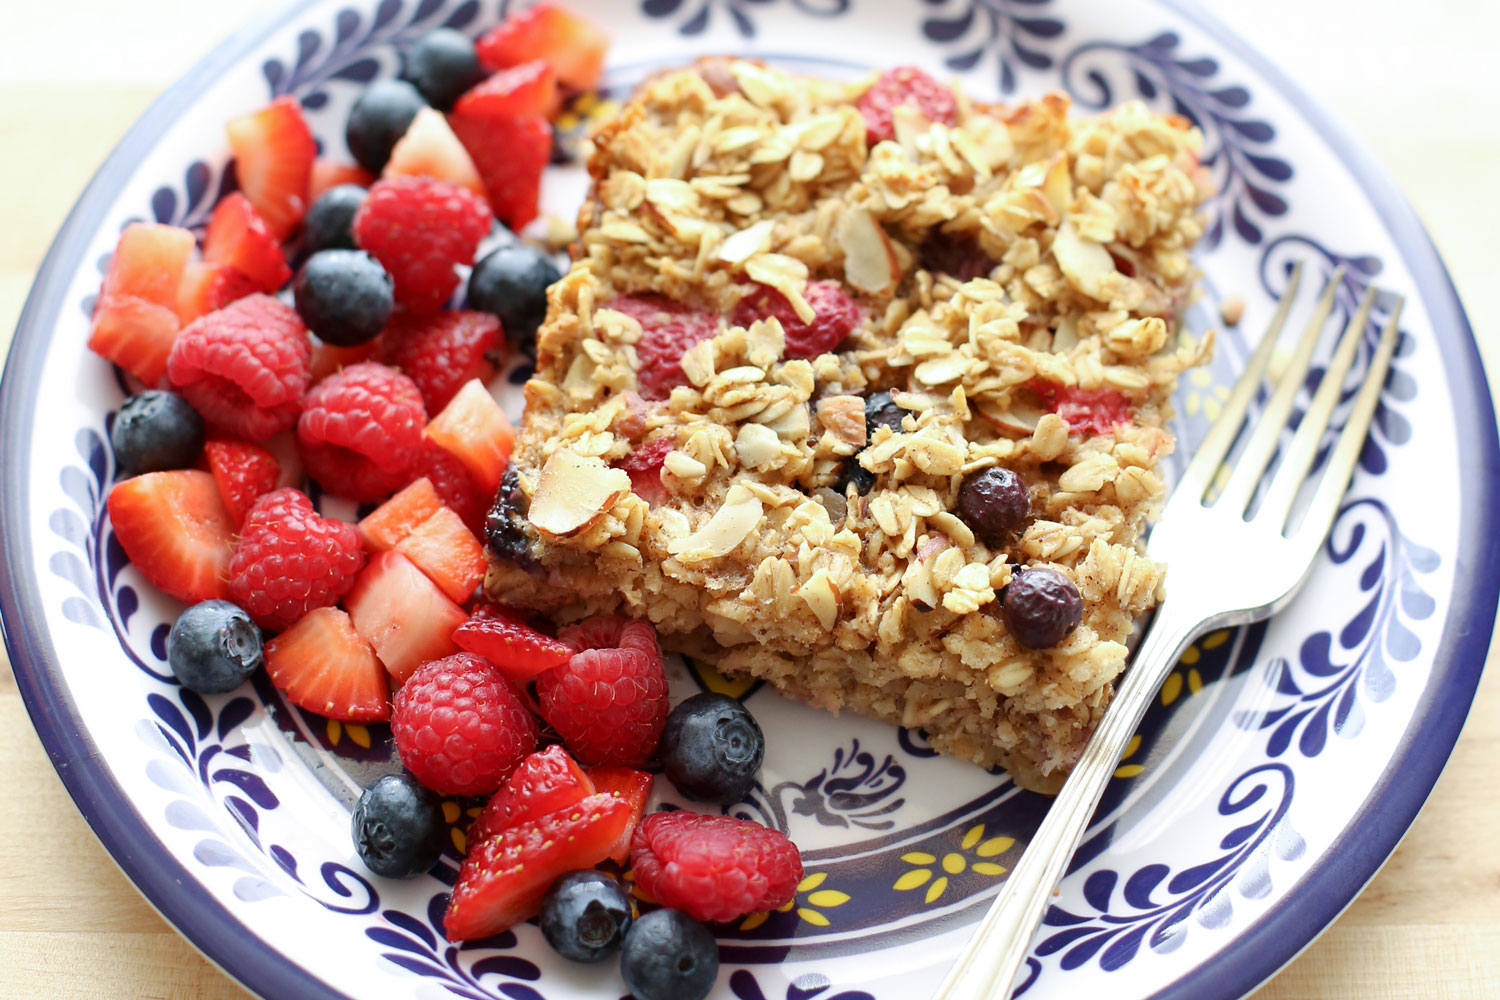 Berry Baked Oatmeal recipe by Barefeet In The Kitchen